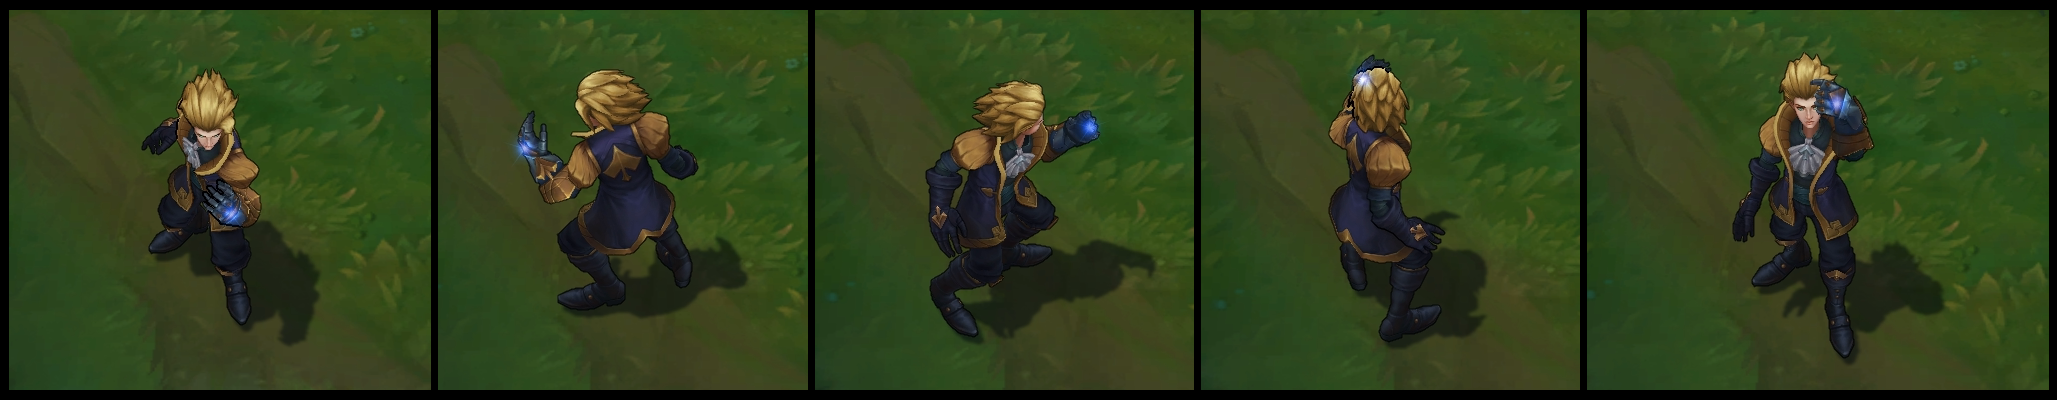 Ace of Spades Ezreal Poses II